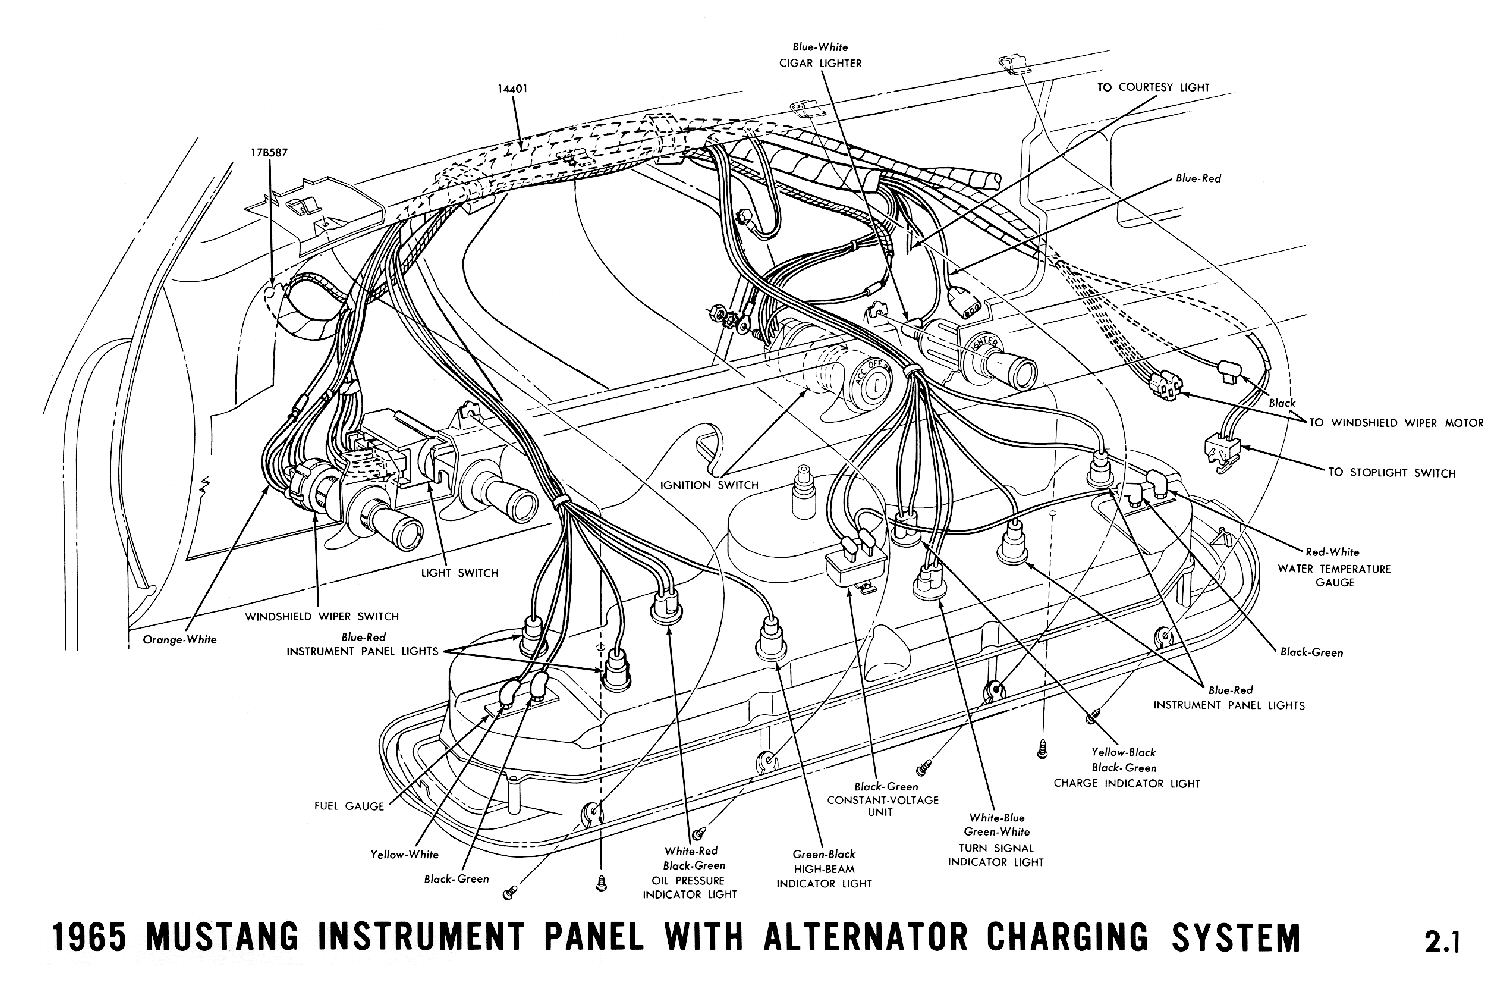 1965 mustang wiring diagrams average joe restoration rh averagejoerestoration com 1965 mustang wiring diagram free 1965 mustang wiring diagram pdf